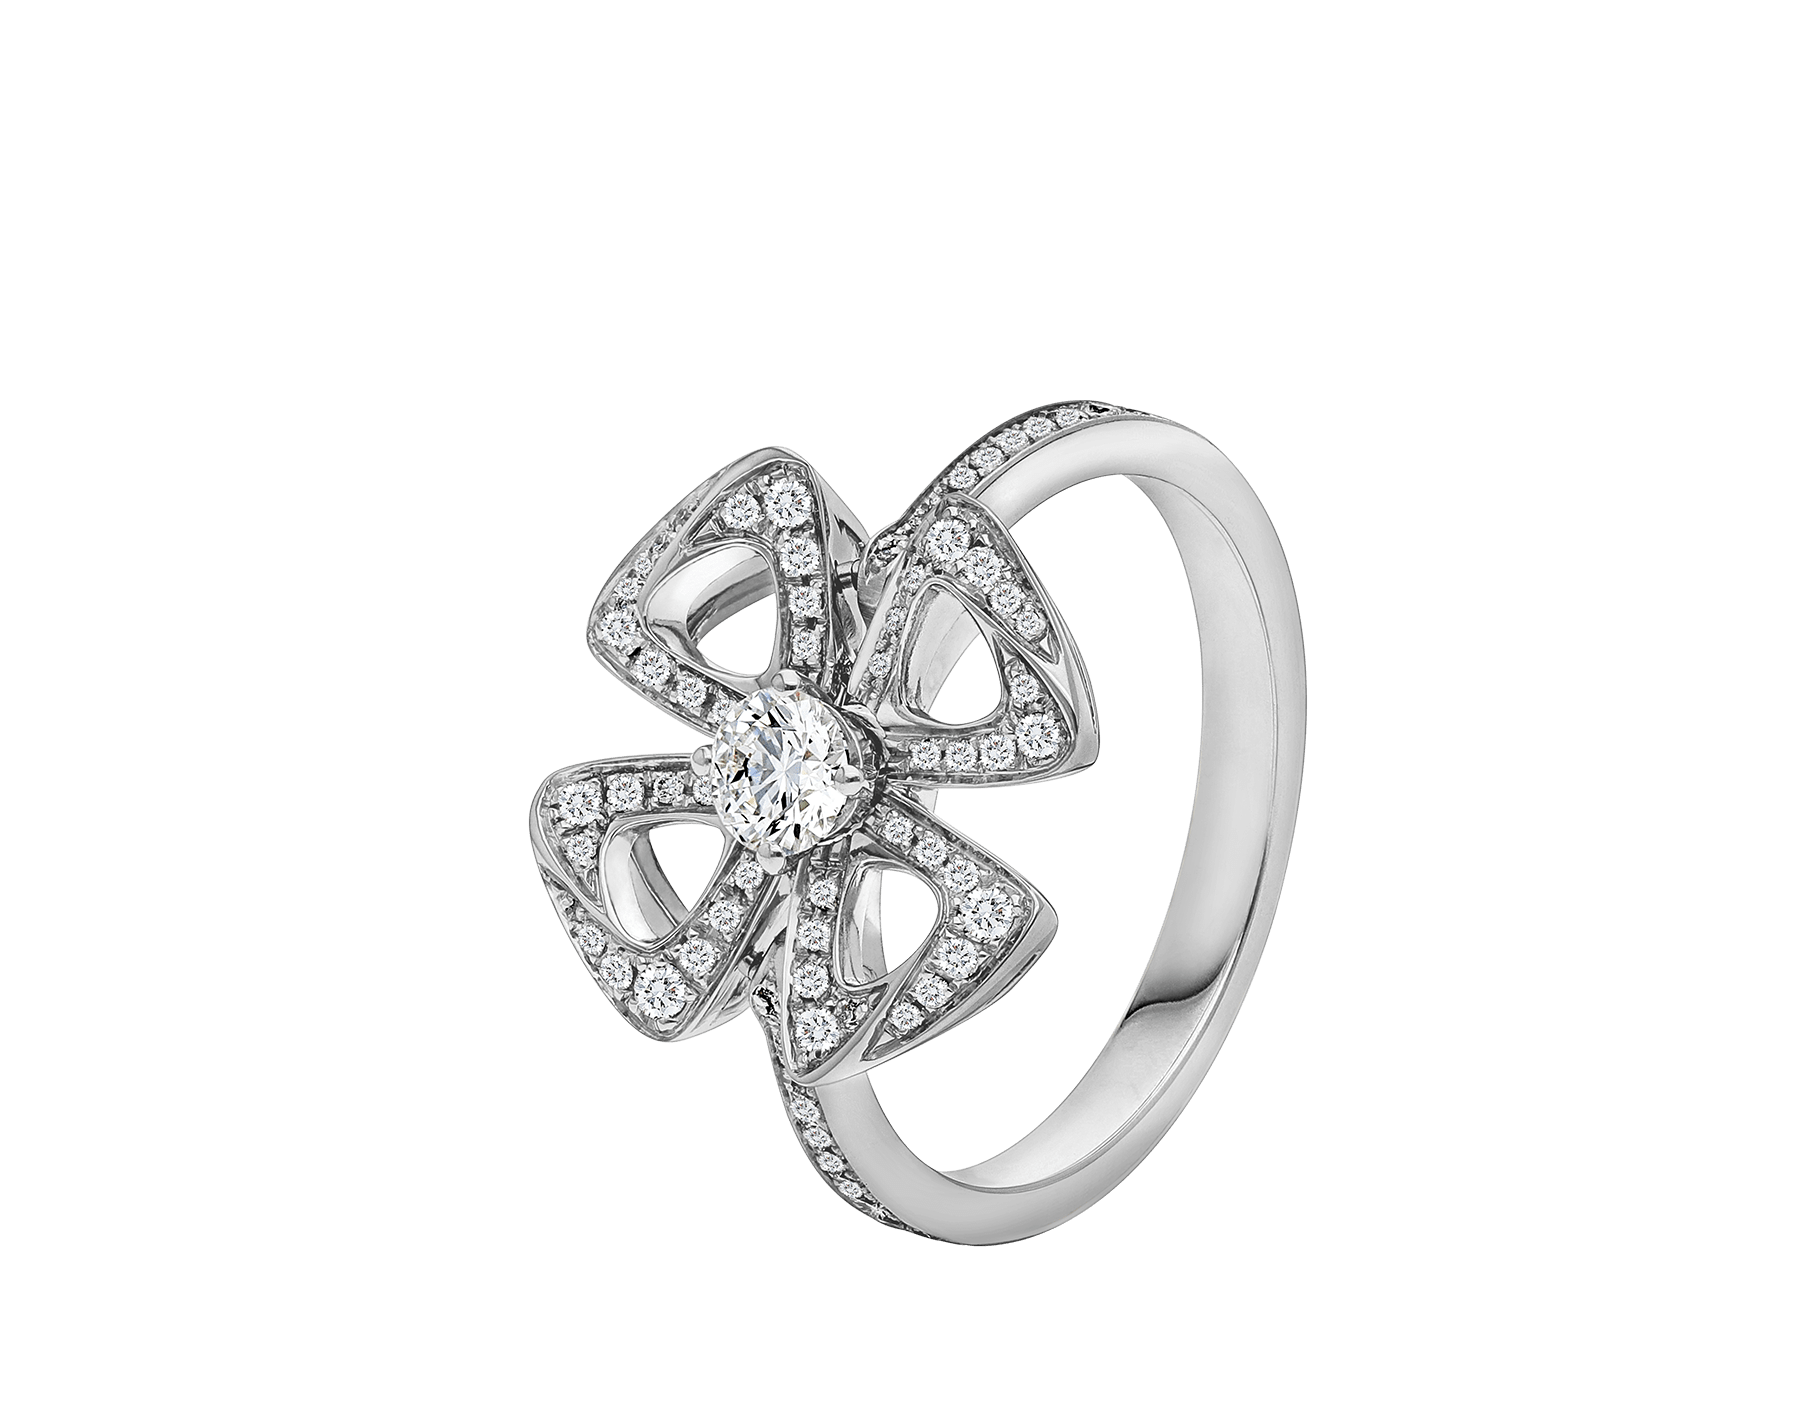 Fiorever 18 kt white gold ring set with a central diamond and pavé diamonds. AN858165 image 1